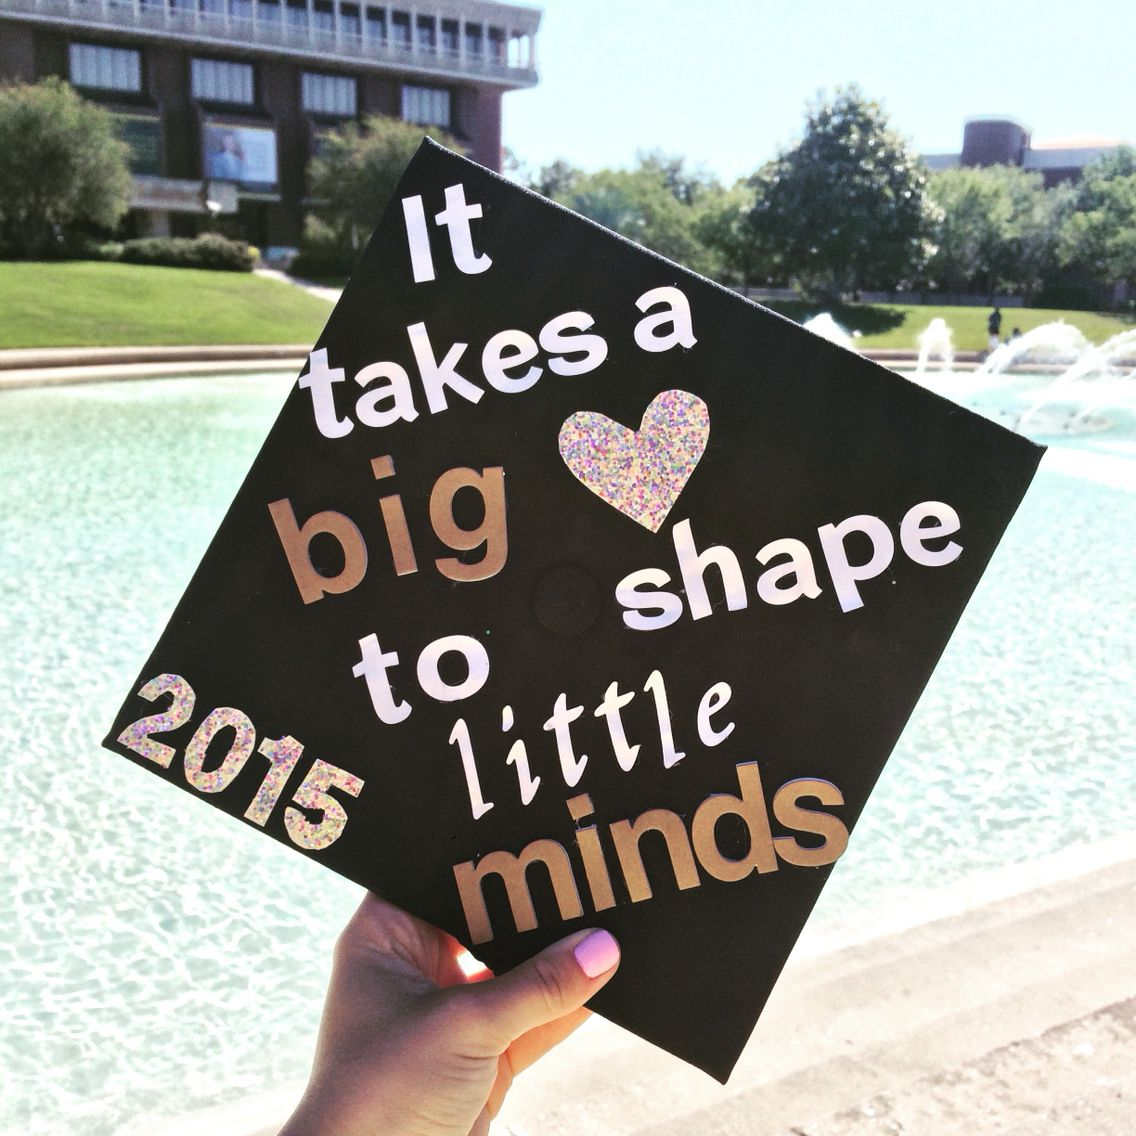 Decorating graduation cap ideas for teachers - Elementary Education Graduation Cap Idea At Ucf